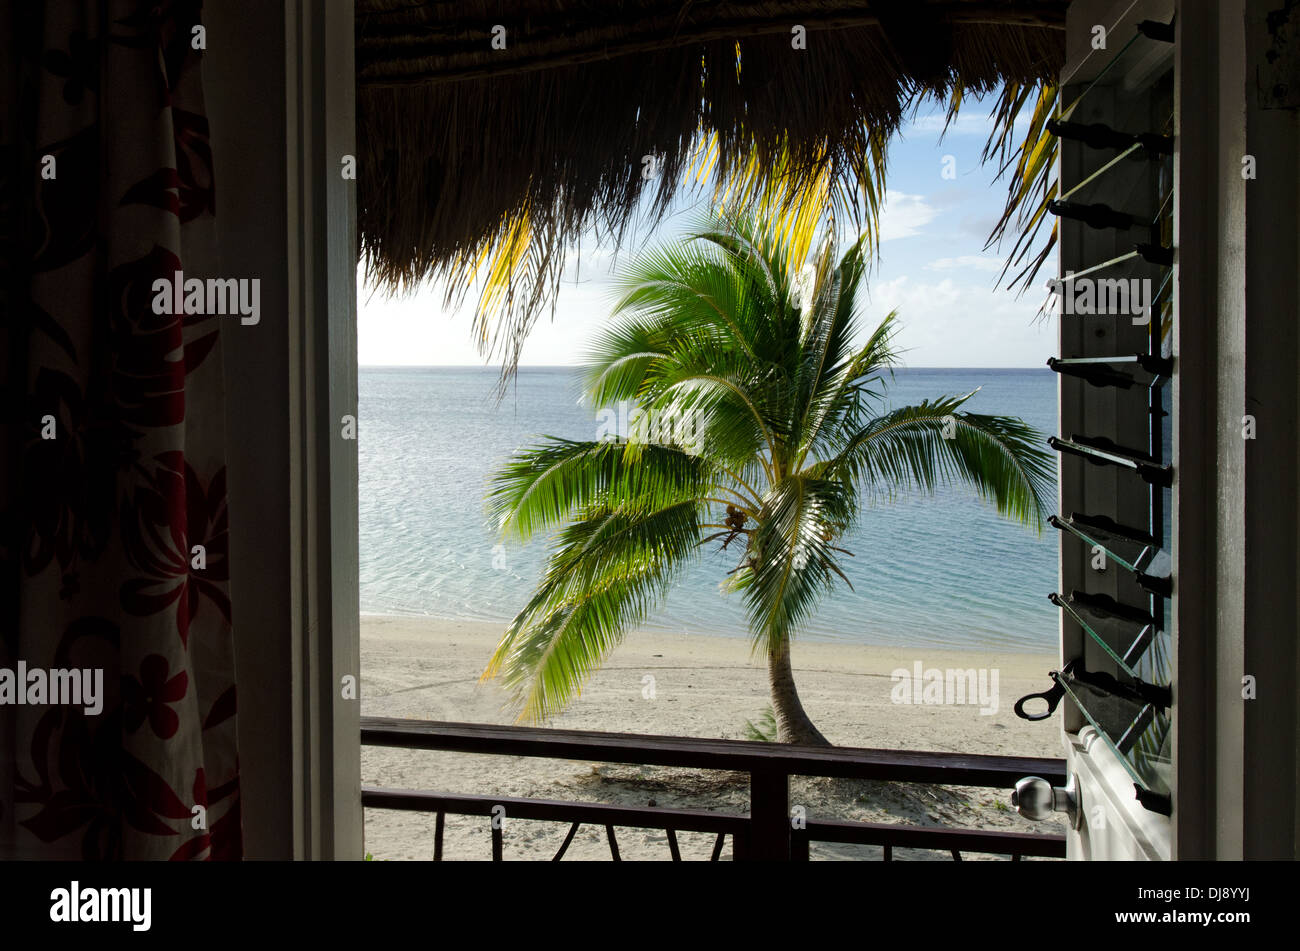 Landscape of coconut palm tree as view from beach bungalow in Aitutaki Lagoon Cook Islands - Stock Image